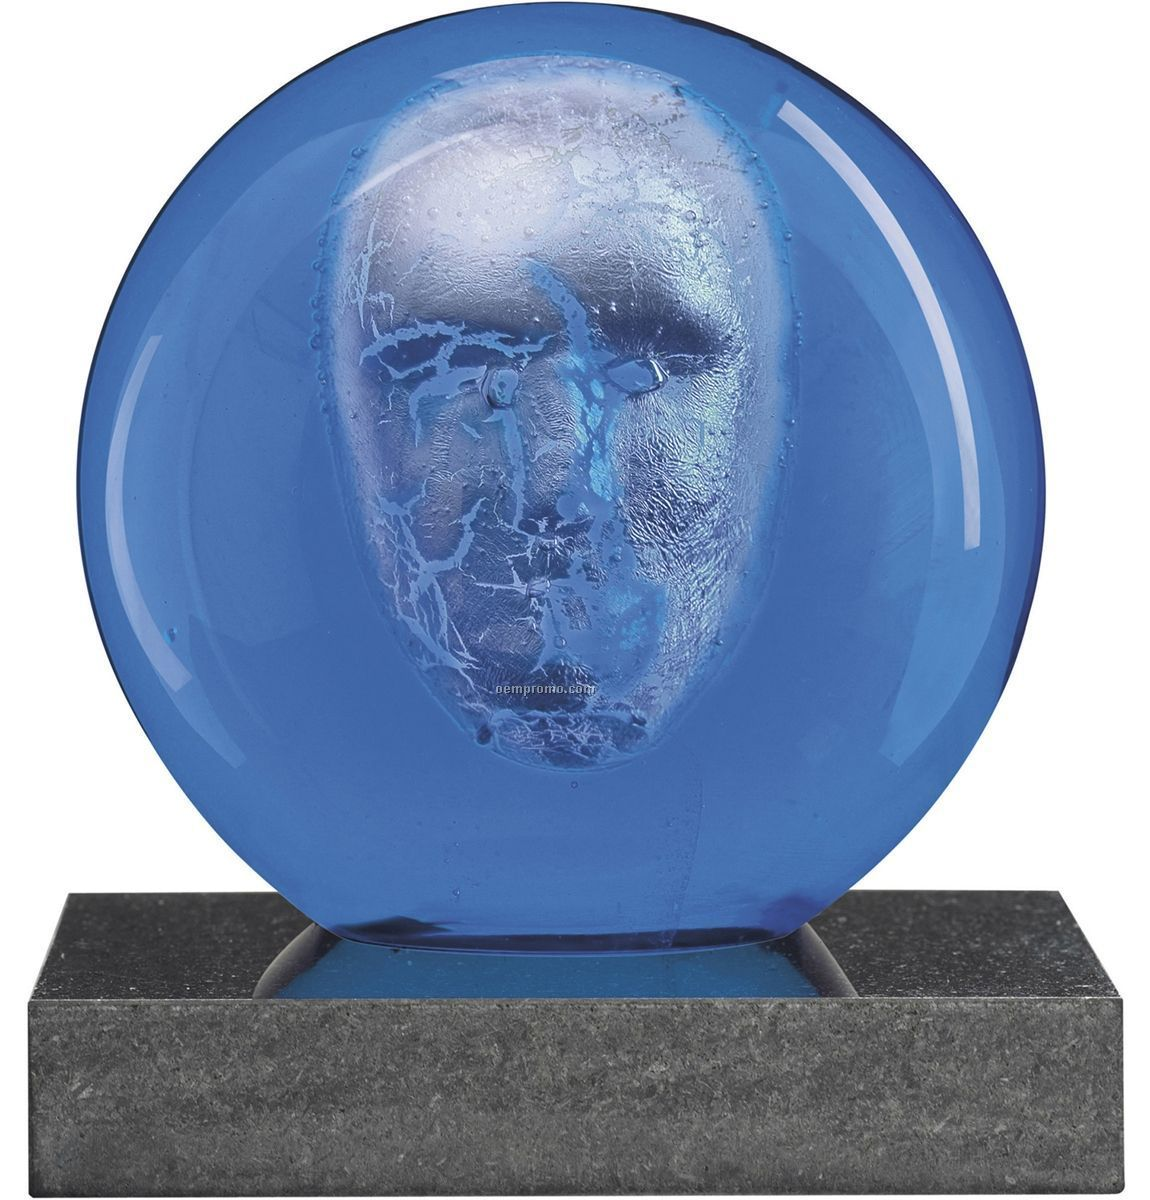 Headman Glass Art W/ Face Sculpture By Bertil Vallien (Blue)